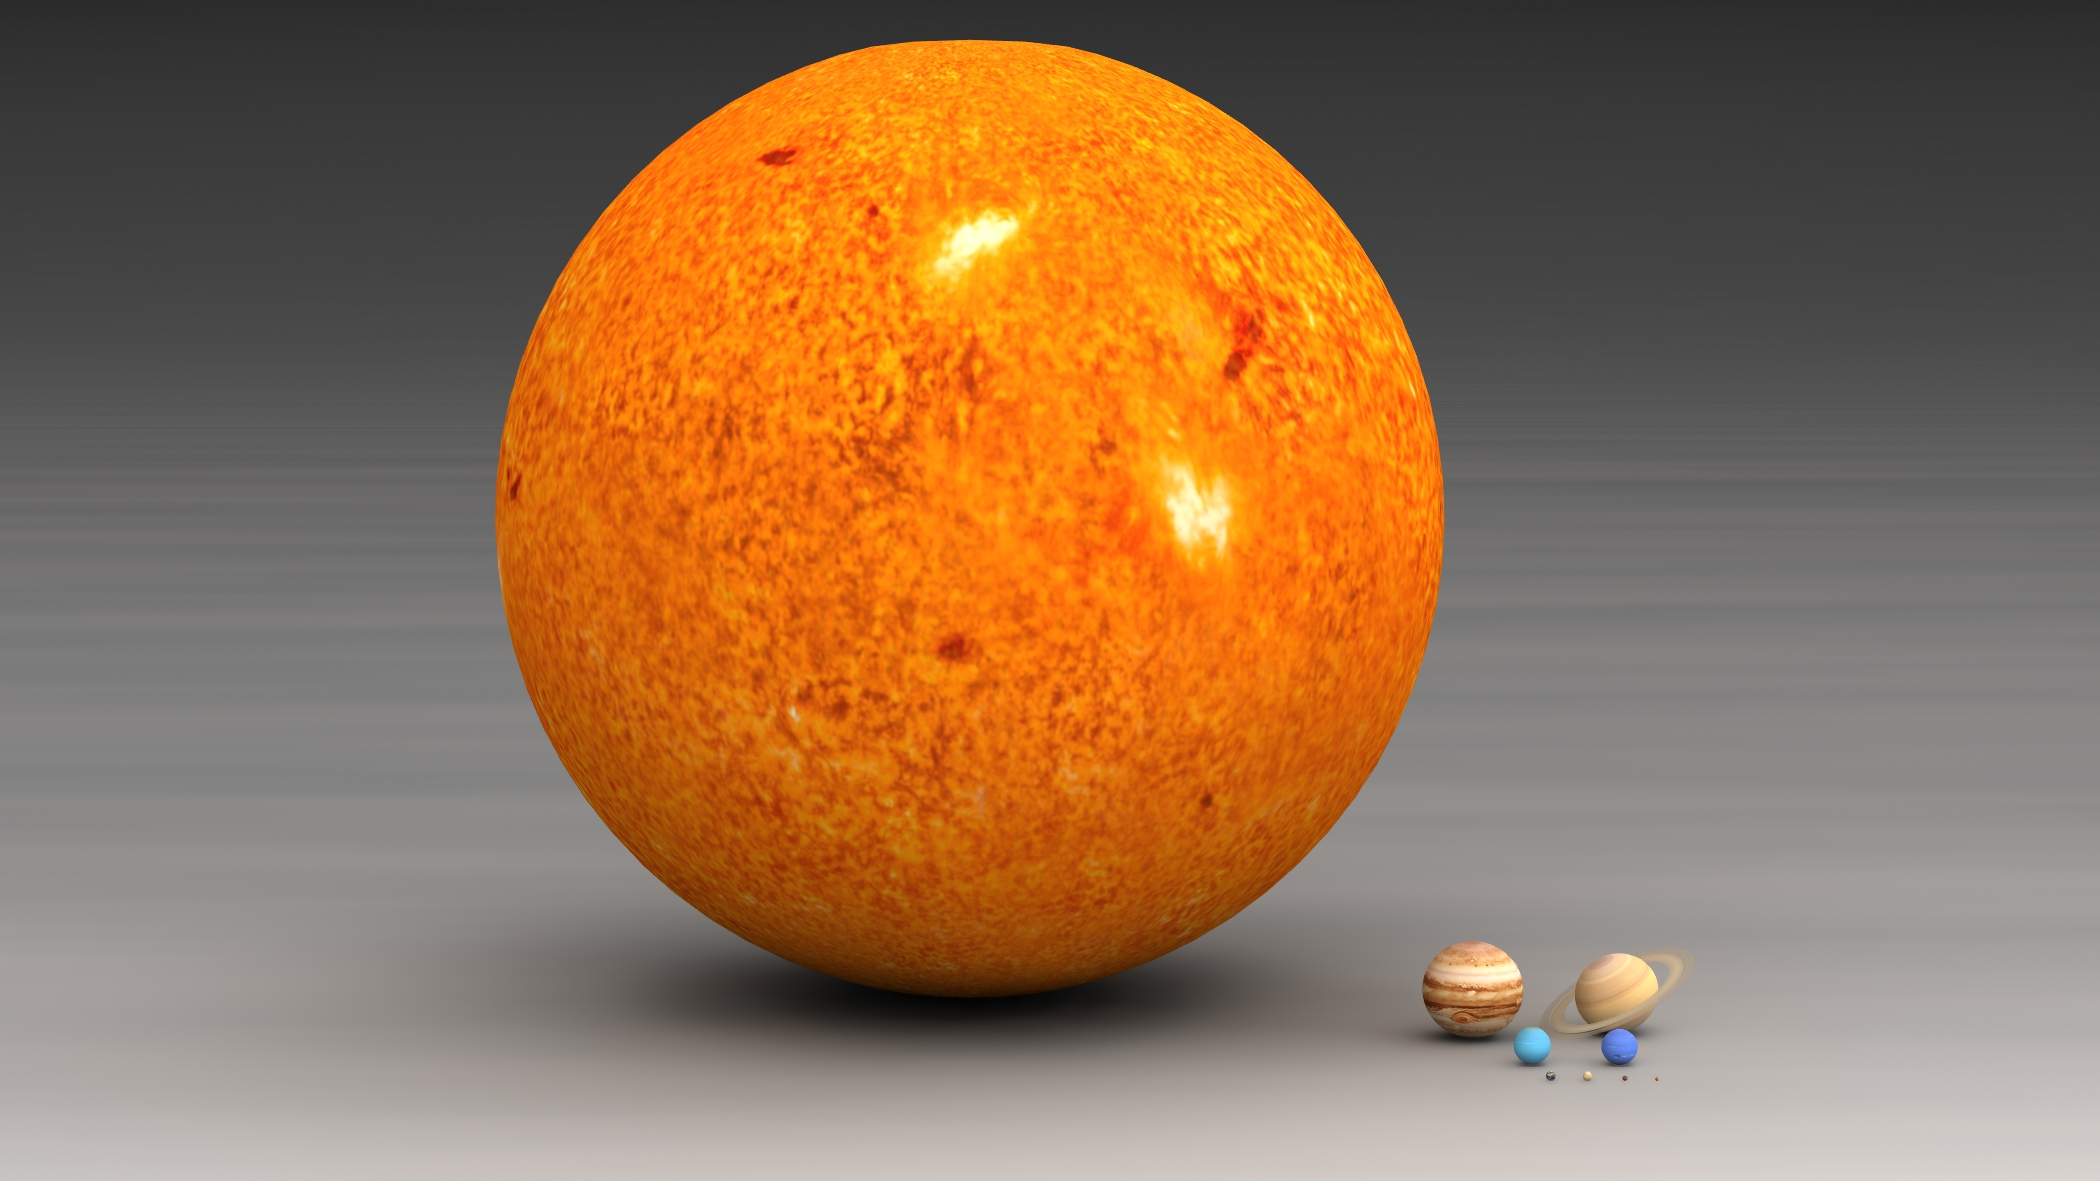 It would take 1.3 million Earths to fill up the Sun